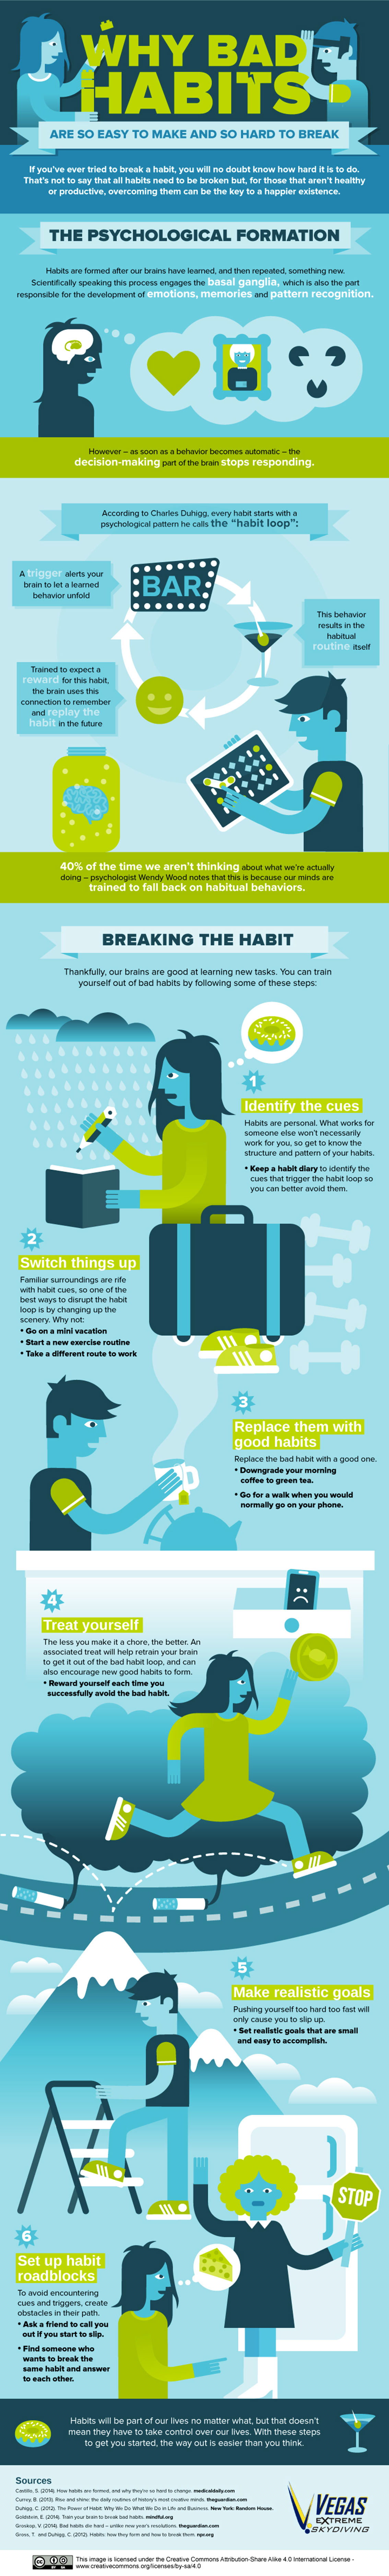 Formation of Bad Habits and How to Break Them - Psychology Infographic